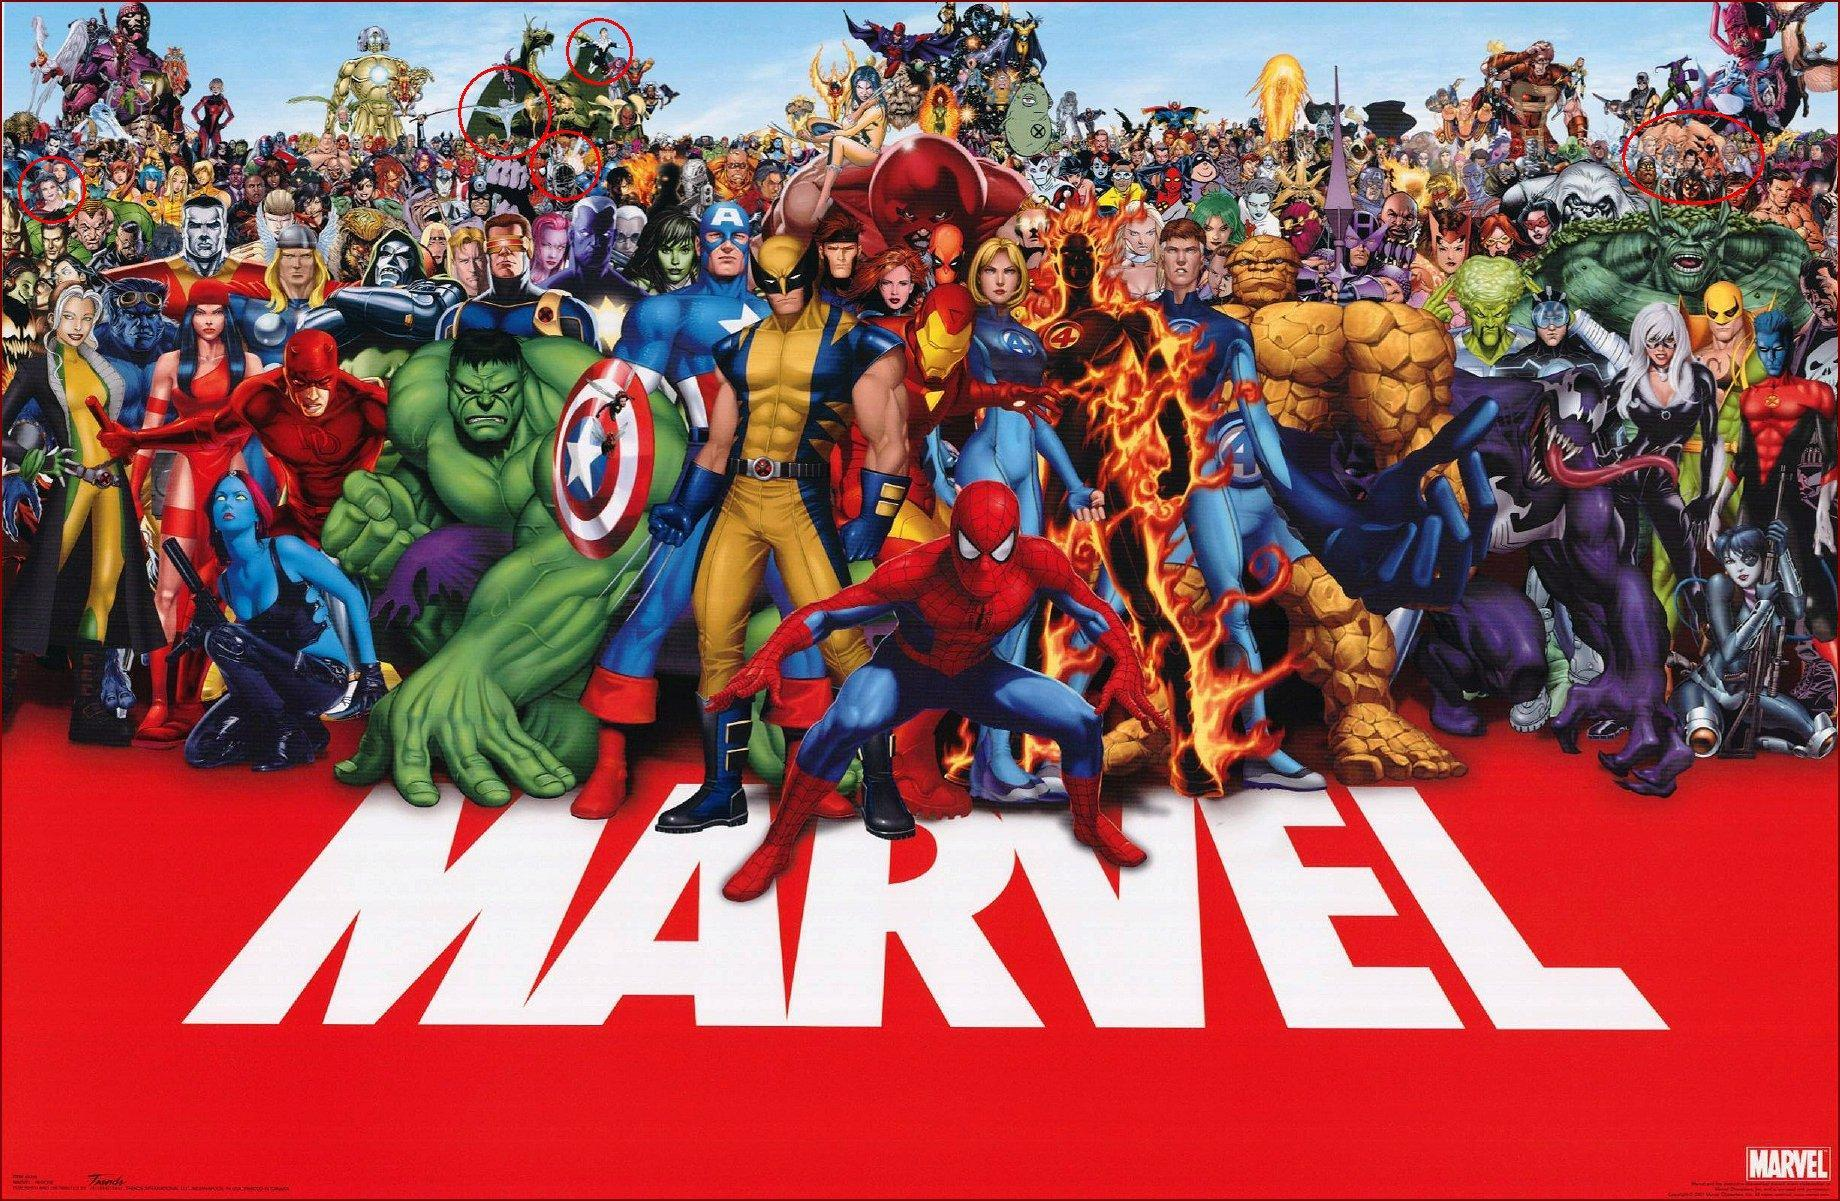 What was the first movie made by Marvel?